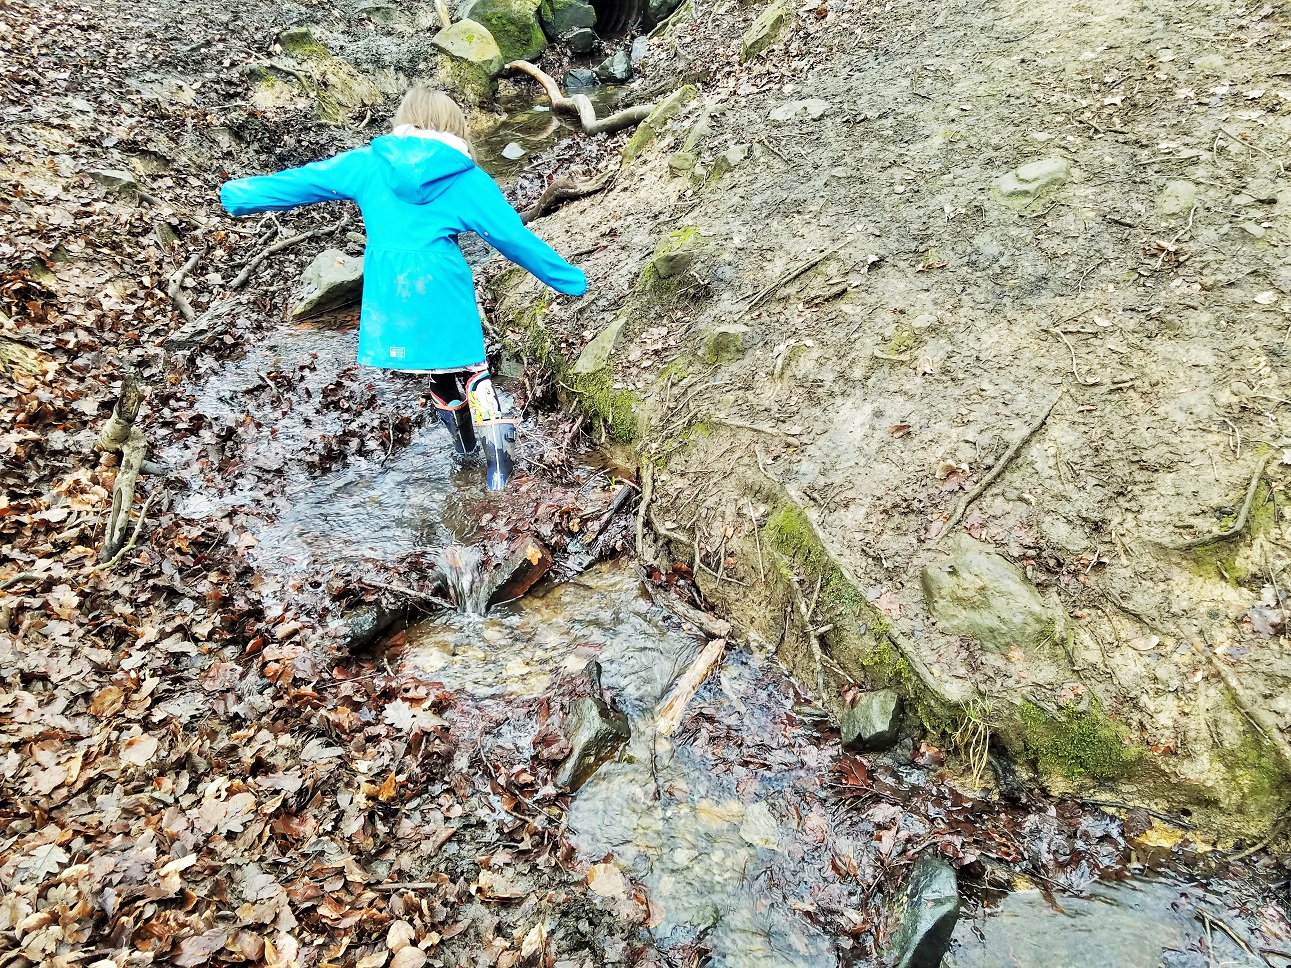 stay at home mum need a break - small child on an adventure walking in a muddy stream